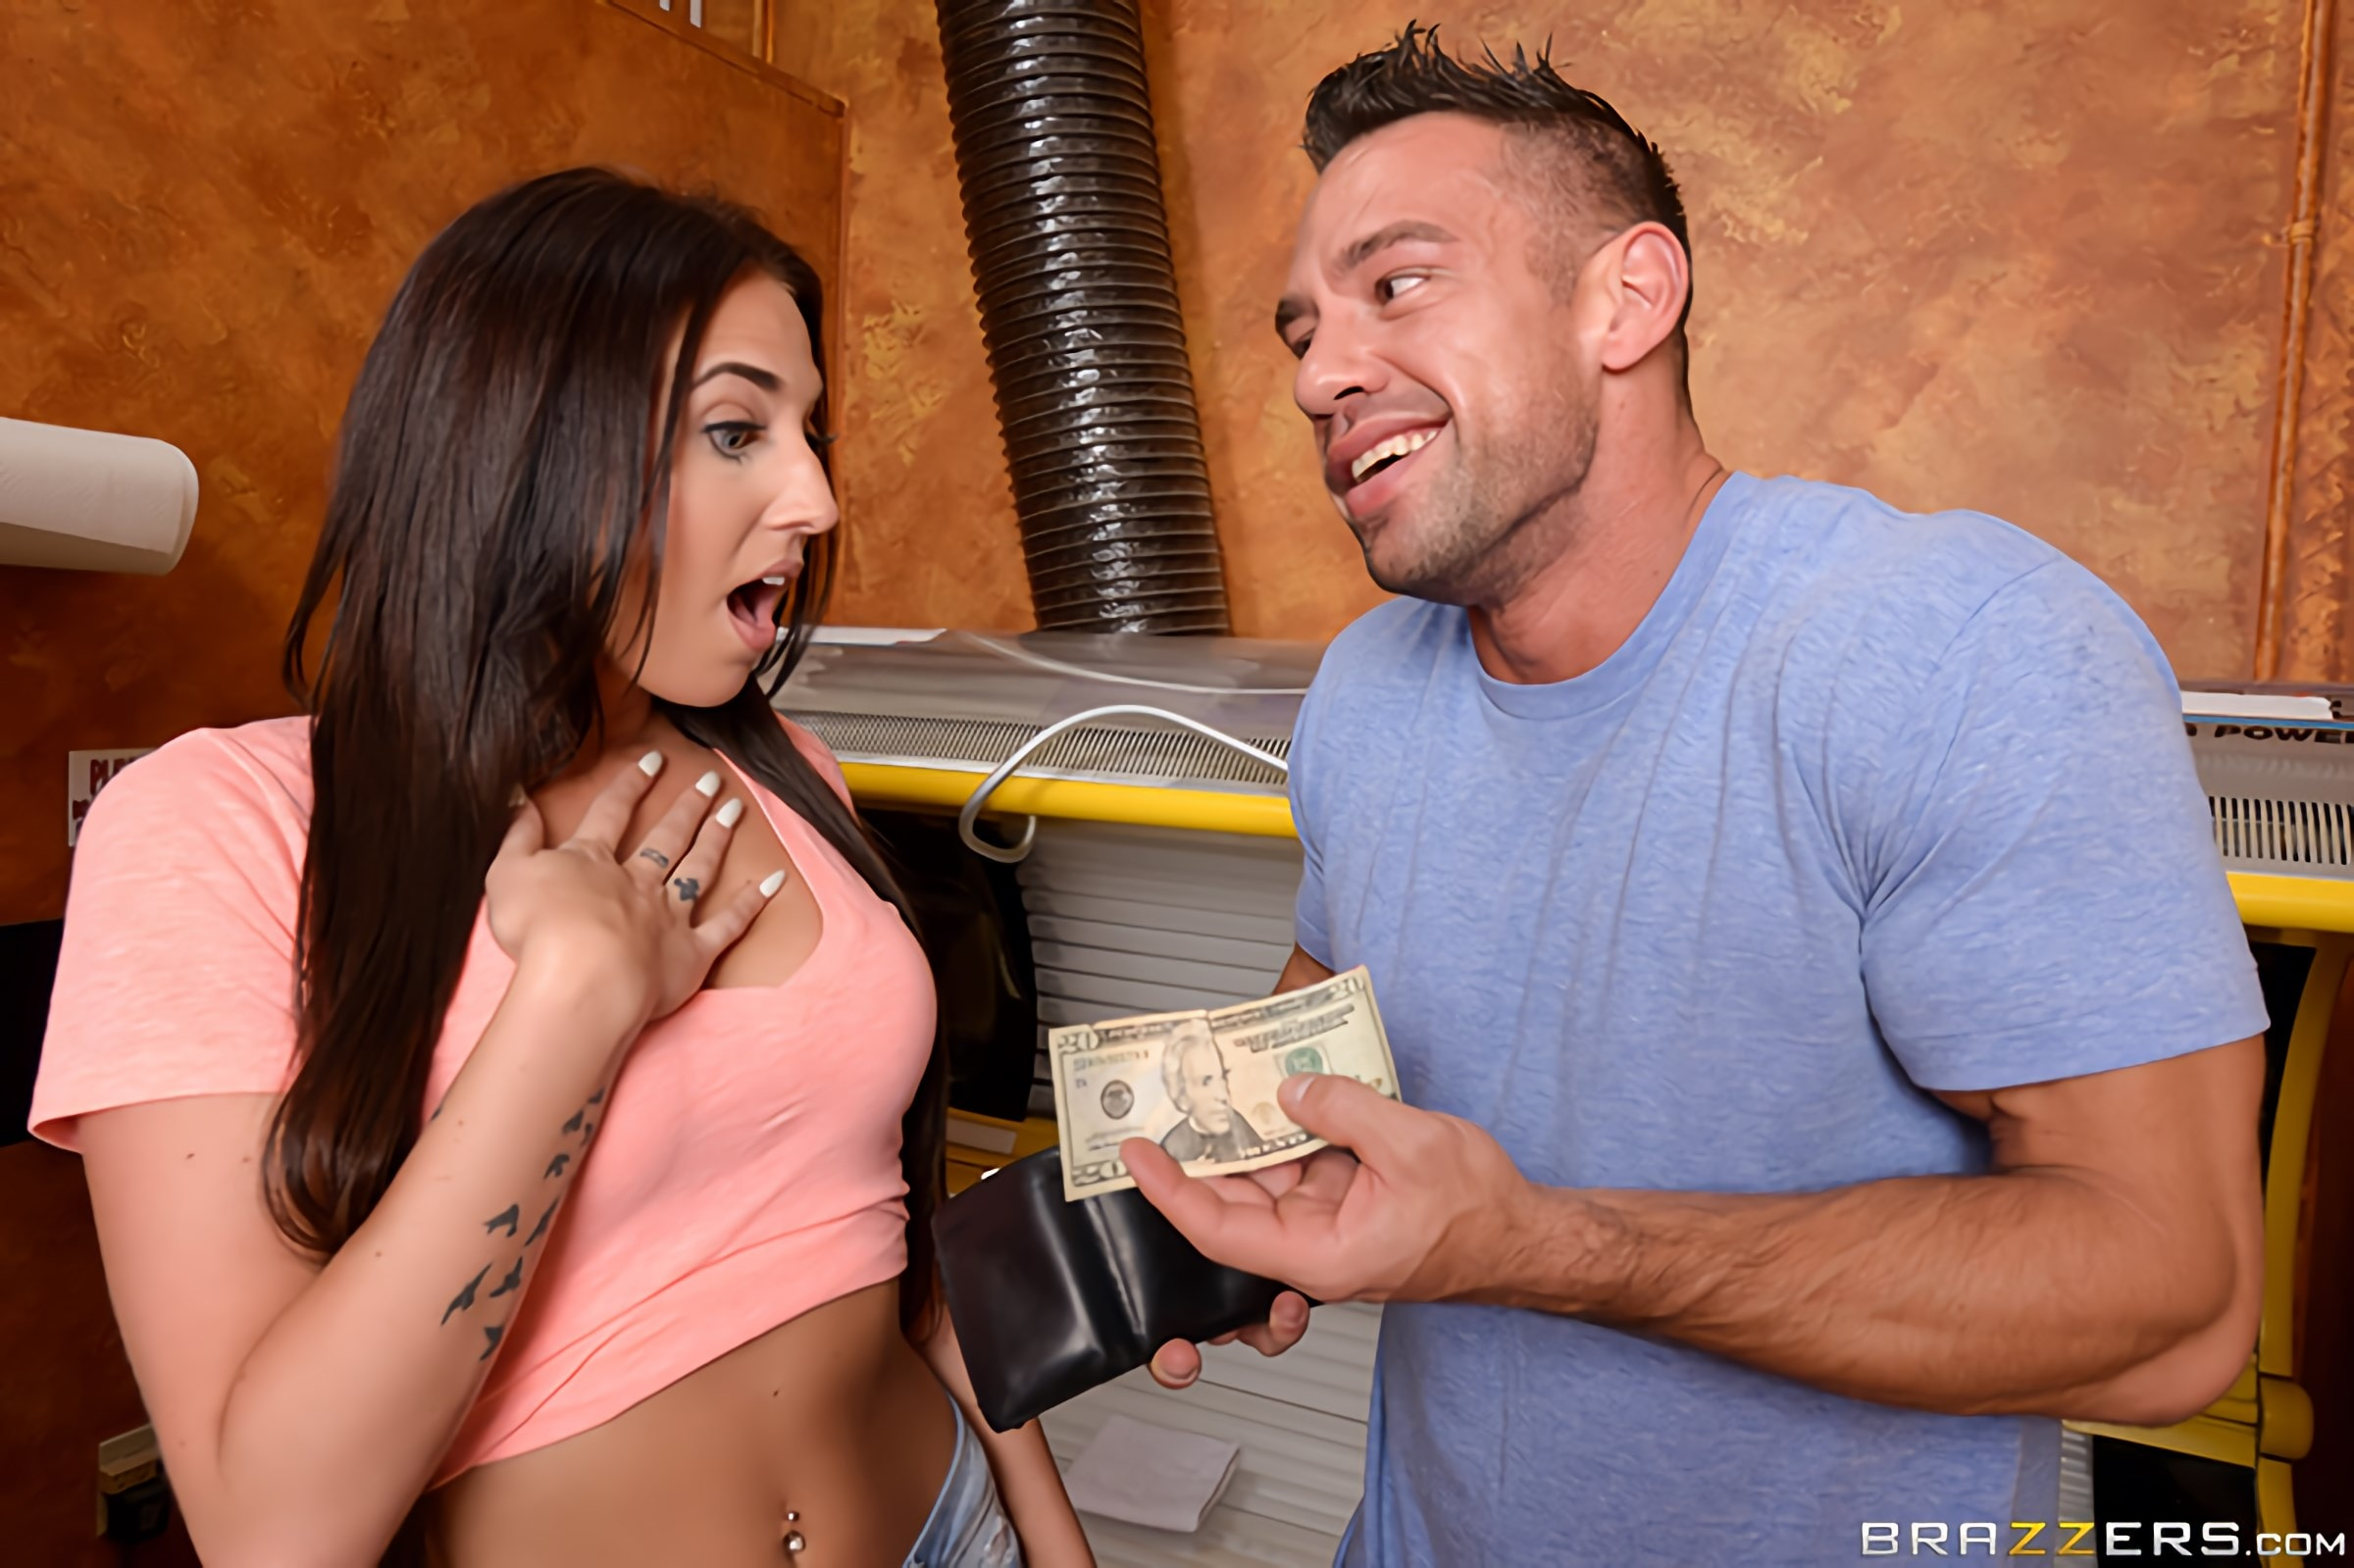 Brazzers 'Tight And Tanned- Part 2' starring Cory Chase (Photo 1)